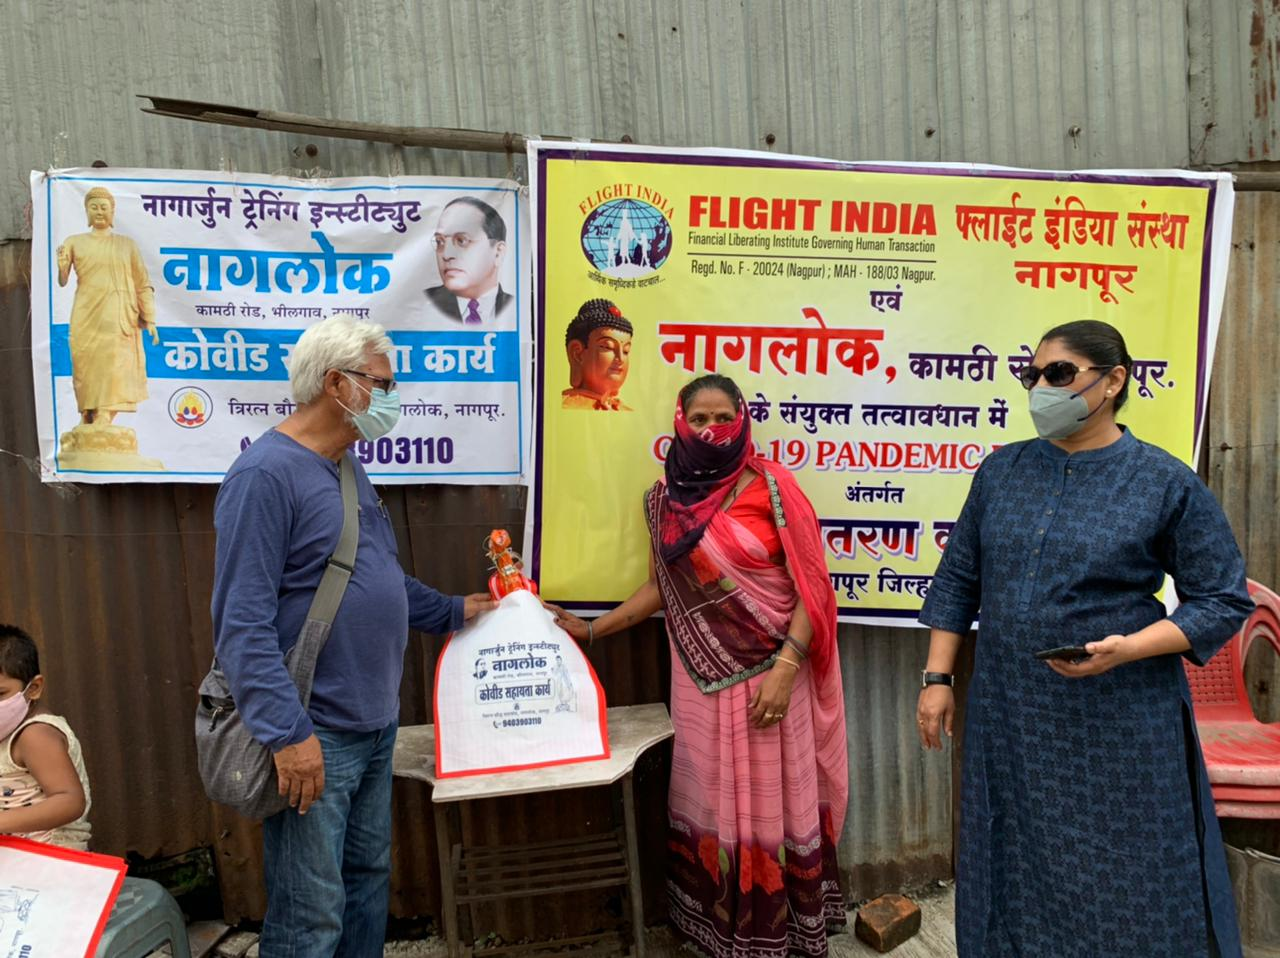 You are currently viewing Ration Kit distribution at Nagpur by Nagaloka and Flight India team